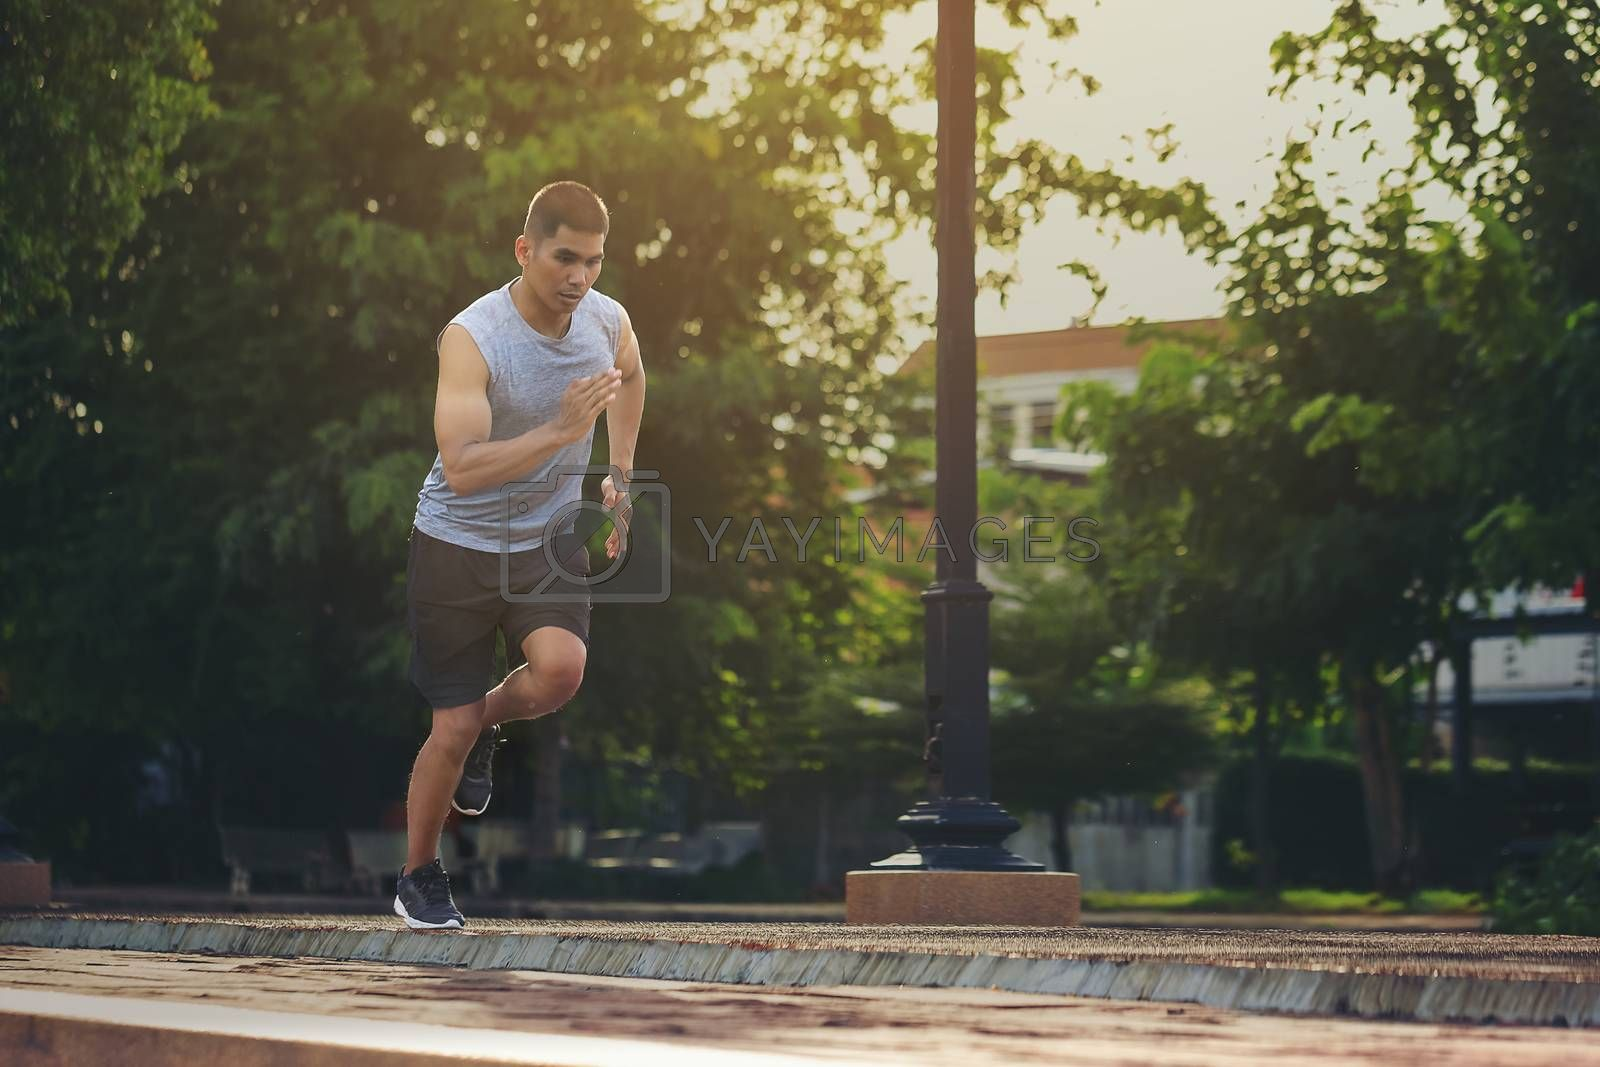 Portrait of fit and sporty young man running in the city. Concep by numberone9018